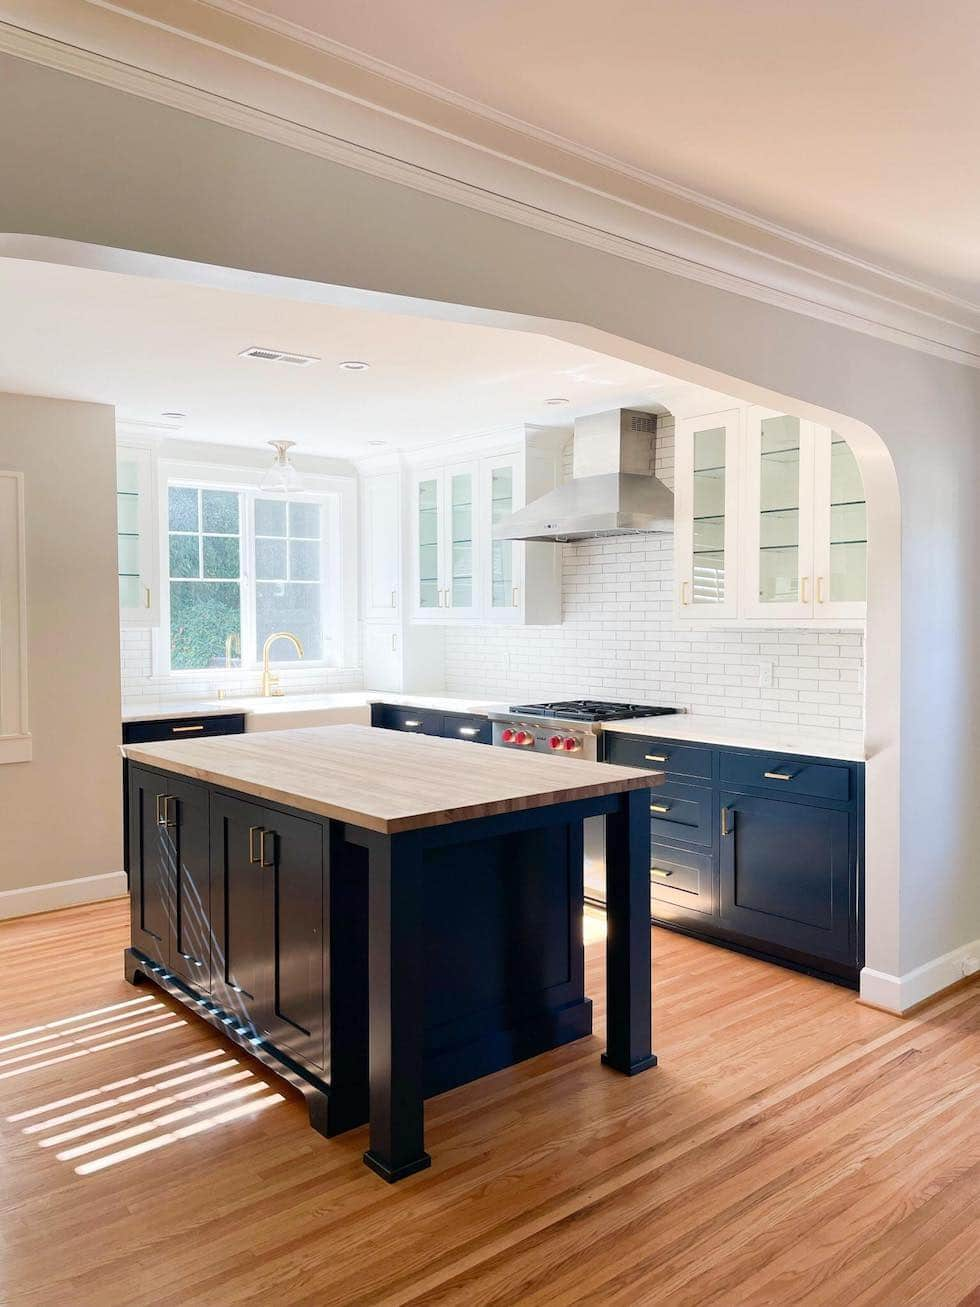 Stylish Glass Kitchen Cabinets (Update from Kylee's House)